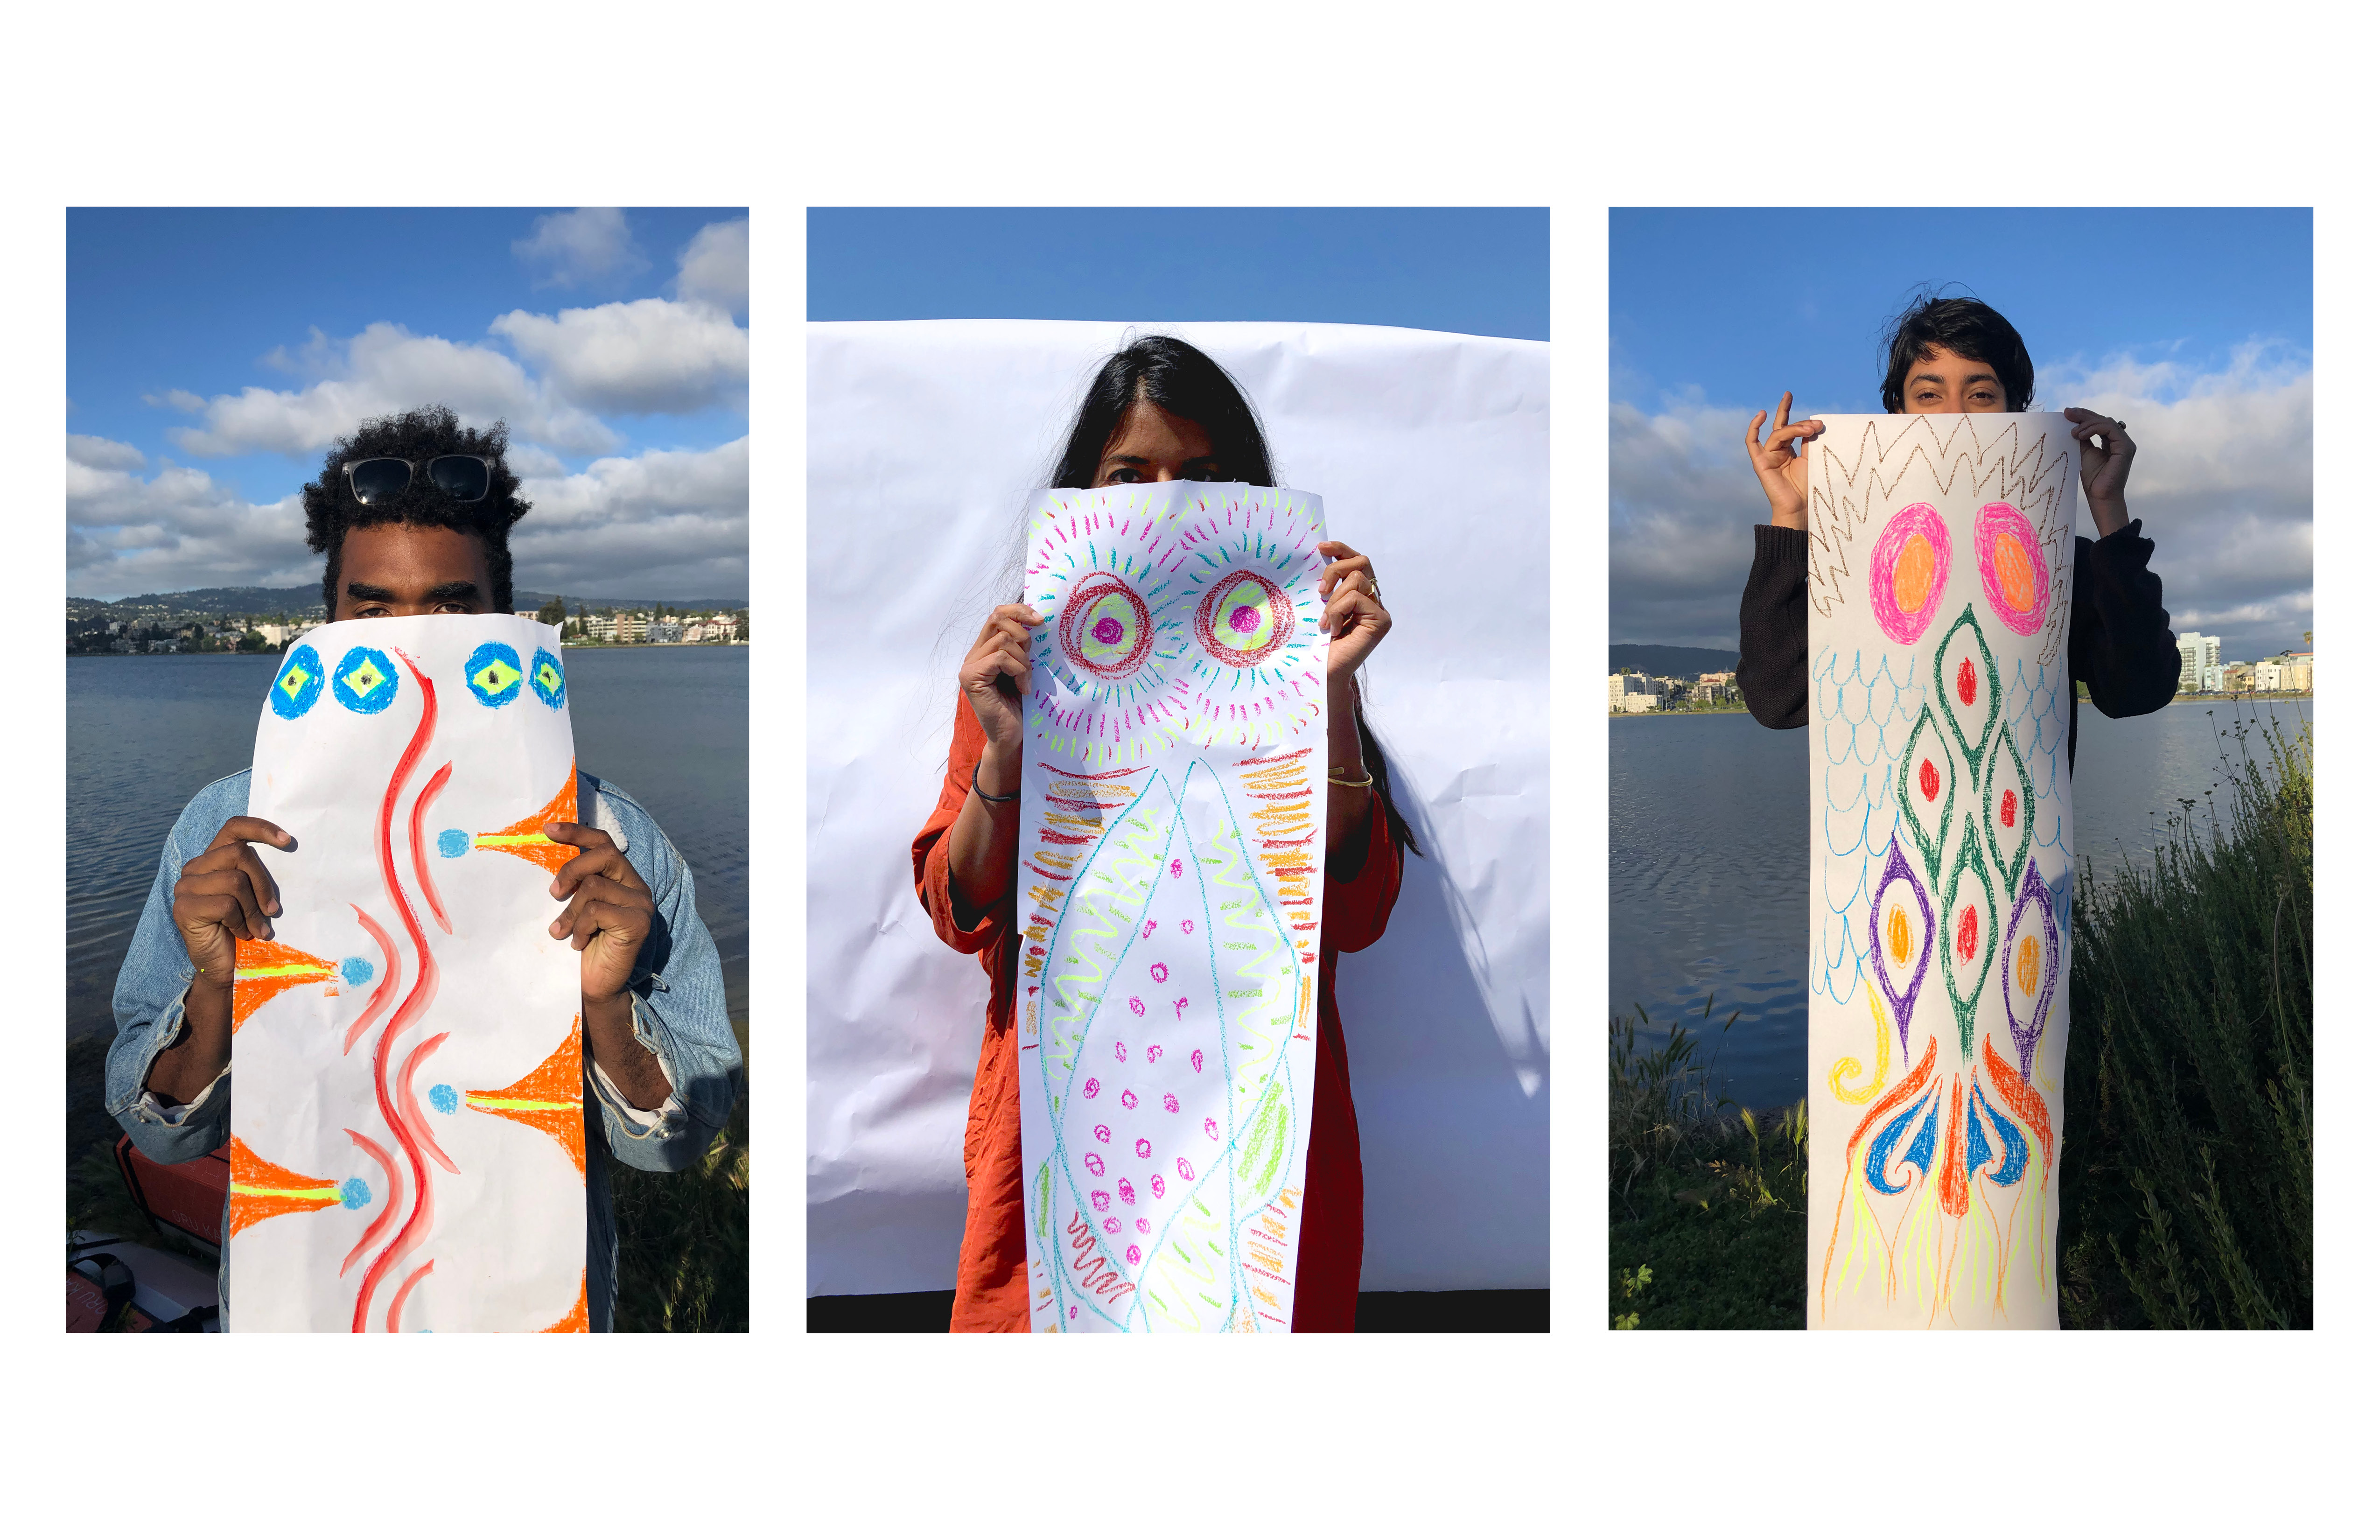 3 images of children holding long white papers illustrated with fish drawings